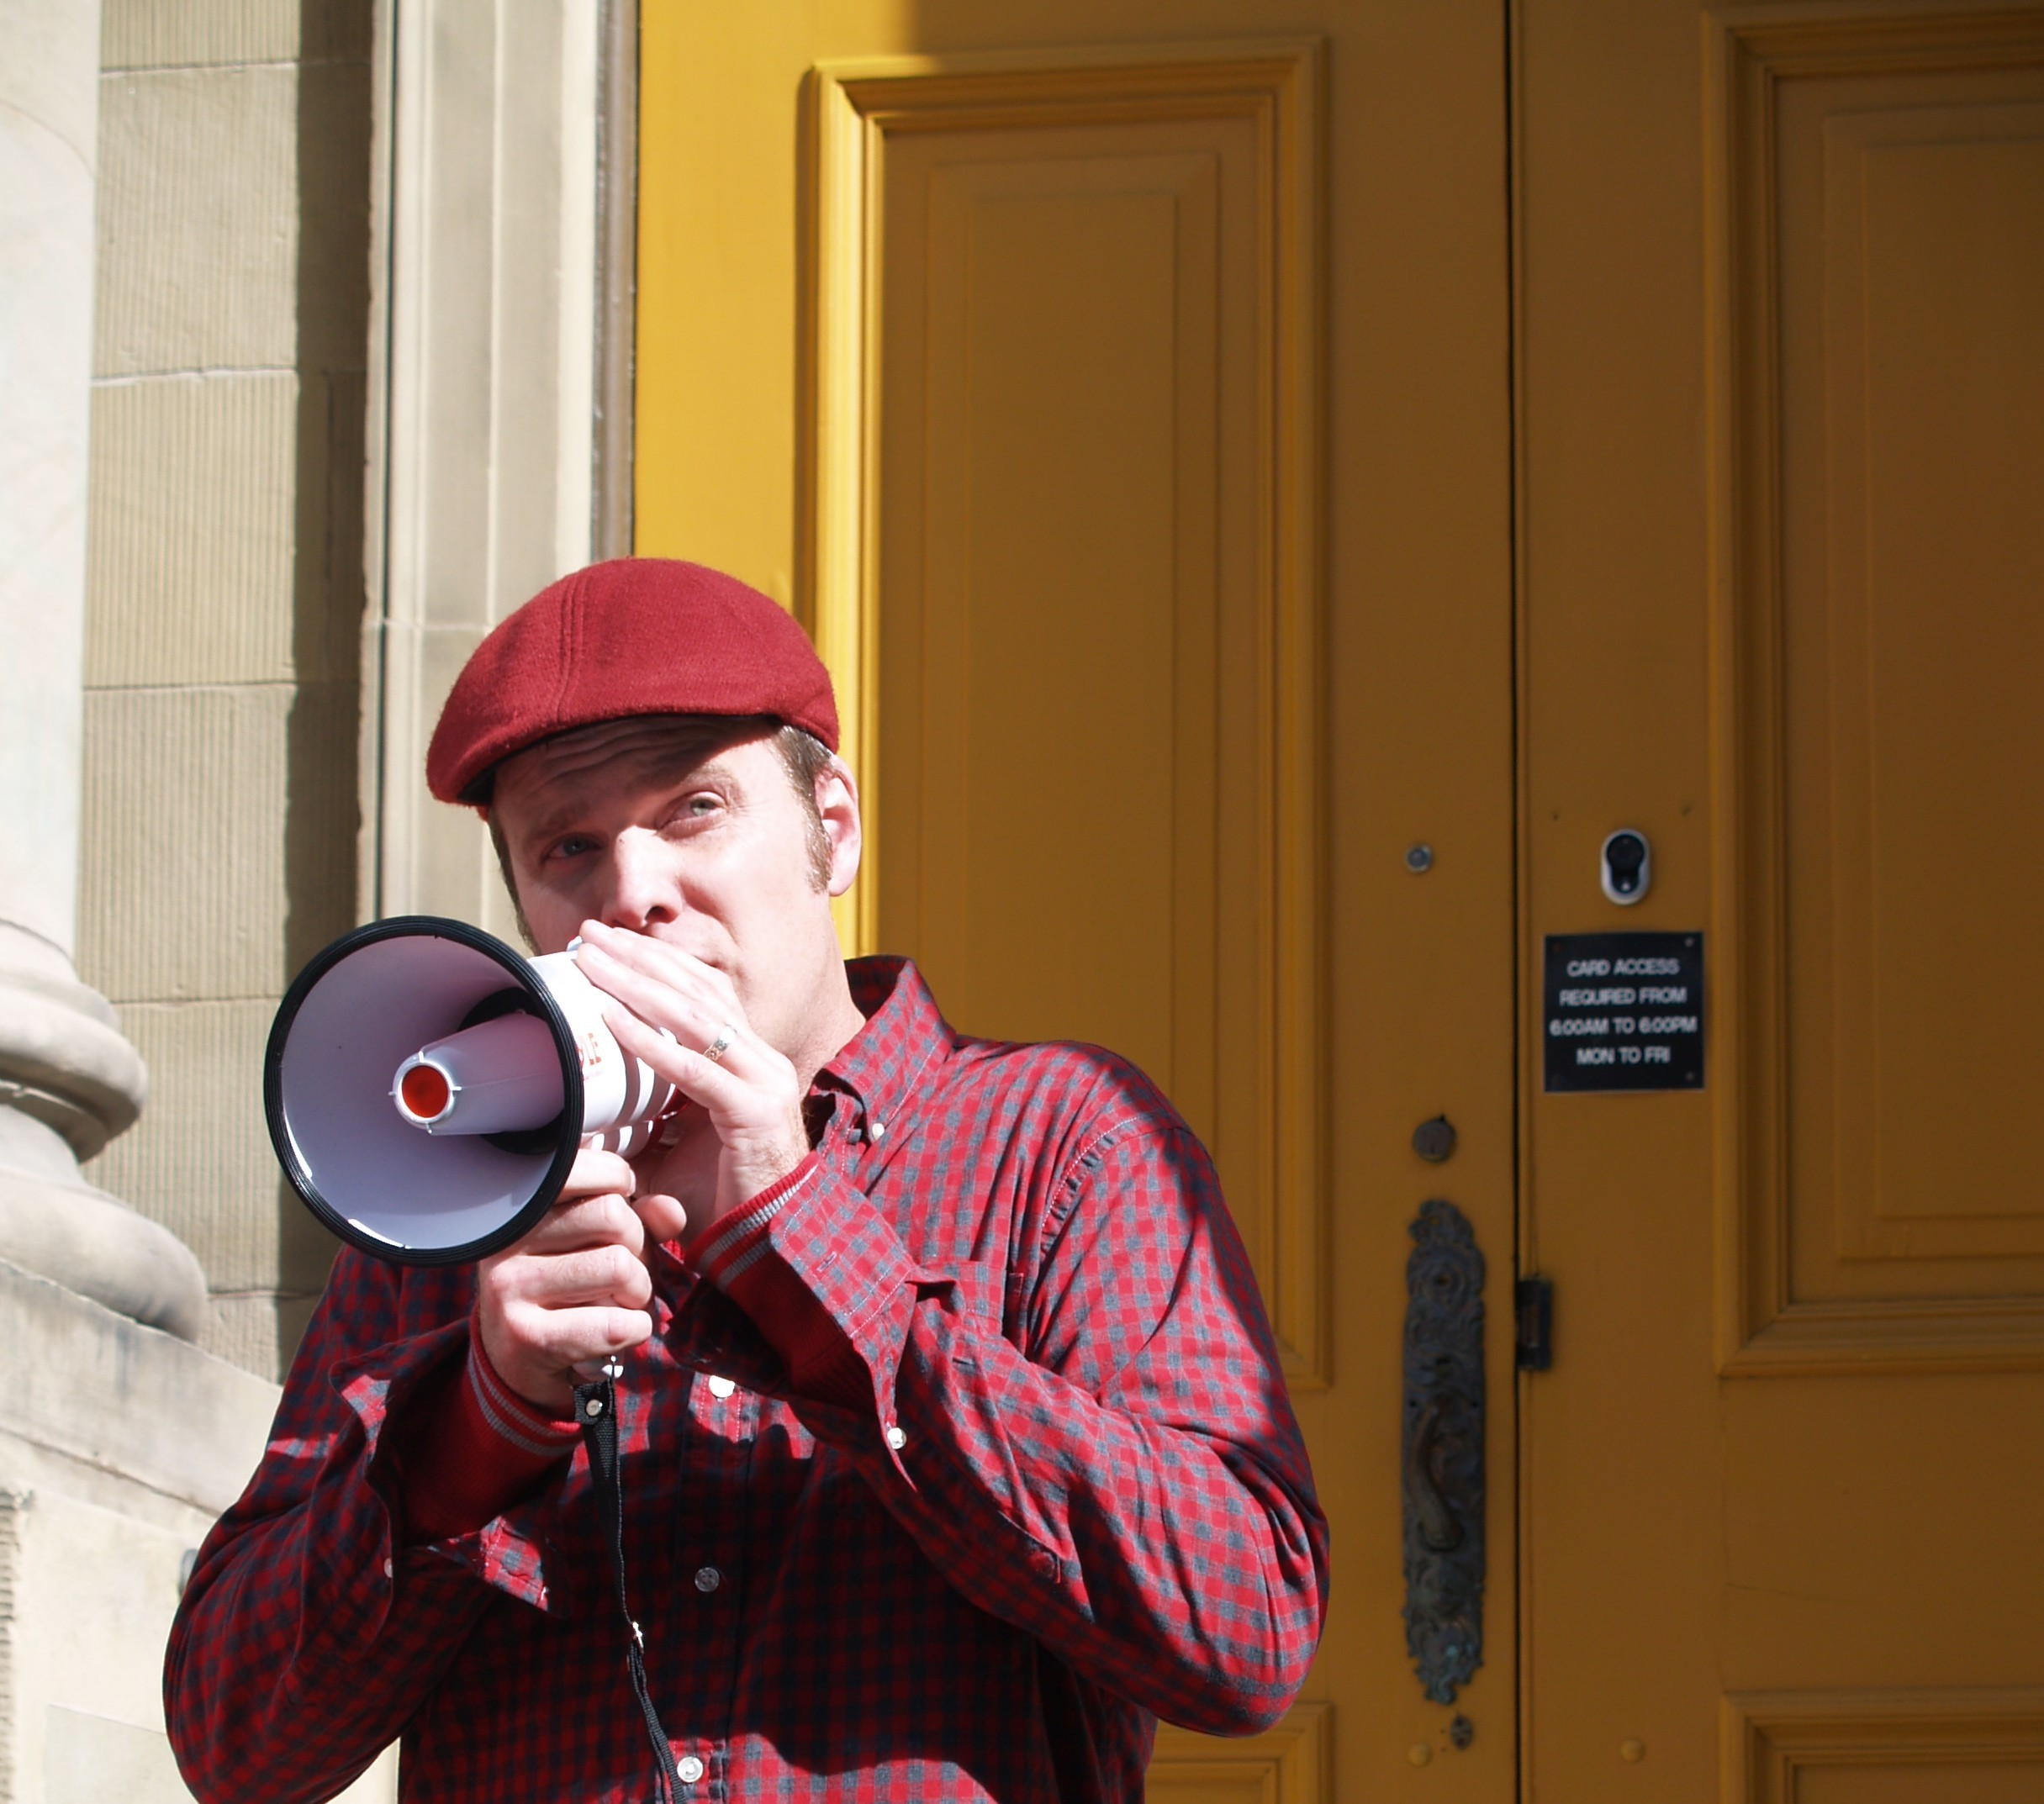 Acclaimed folk singer & songwriter Dave Gunning takes the Clean The Mill message to the NS Legislature, decrying the mill's pollution & also pulp forestry, clear cutting & glyphosate spraying. Photo by Joan Baxter